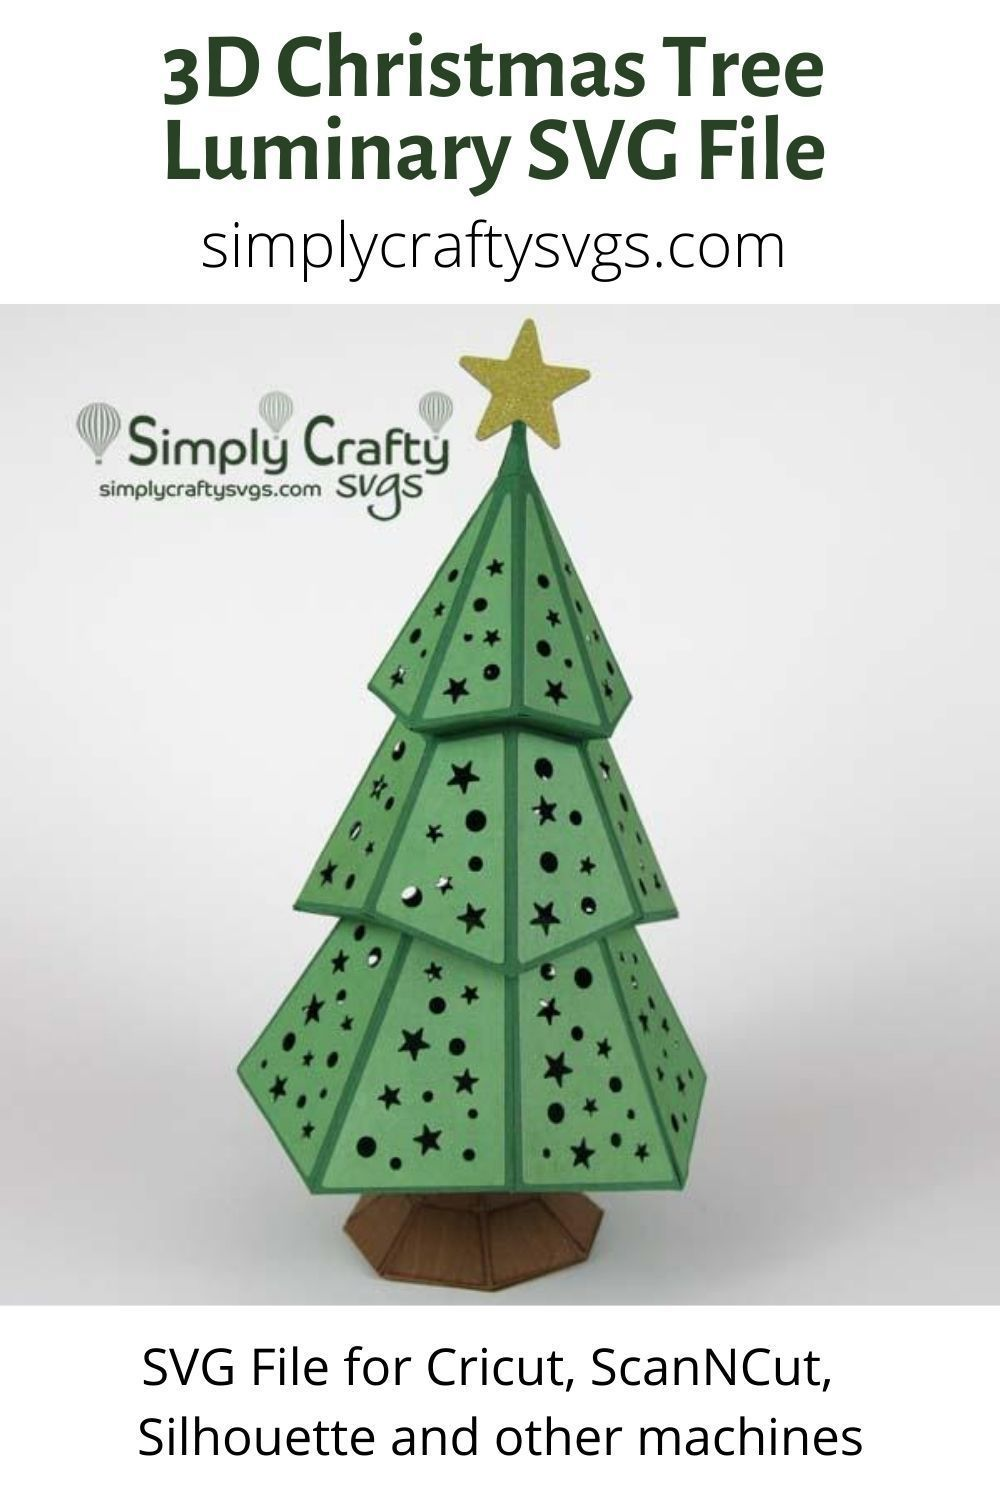 Christmas Tree Luminary SVG File Simply Crafty SVGs in